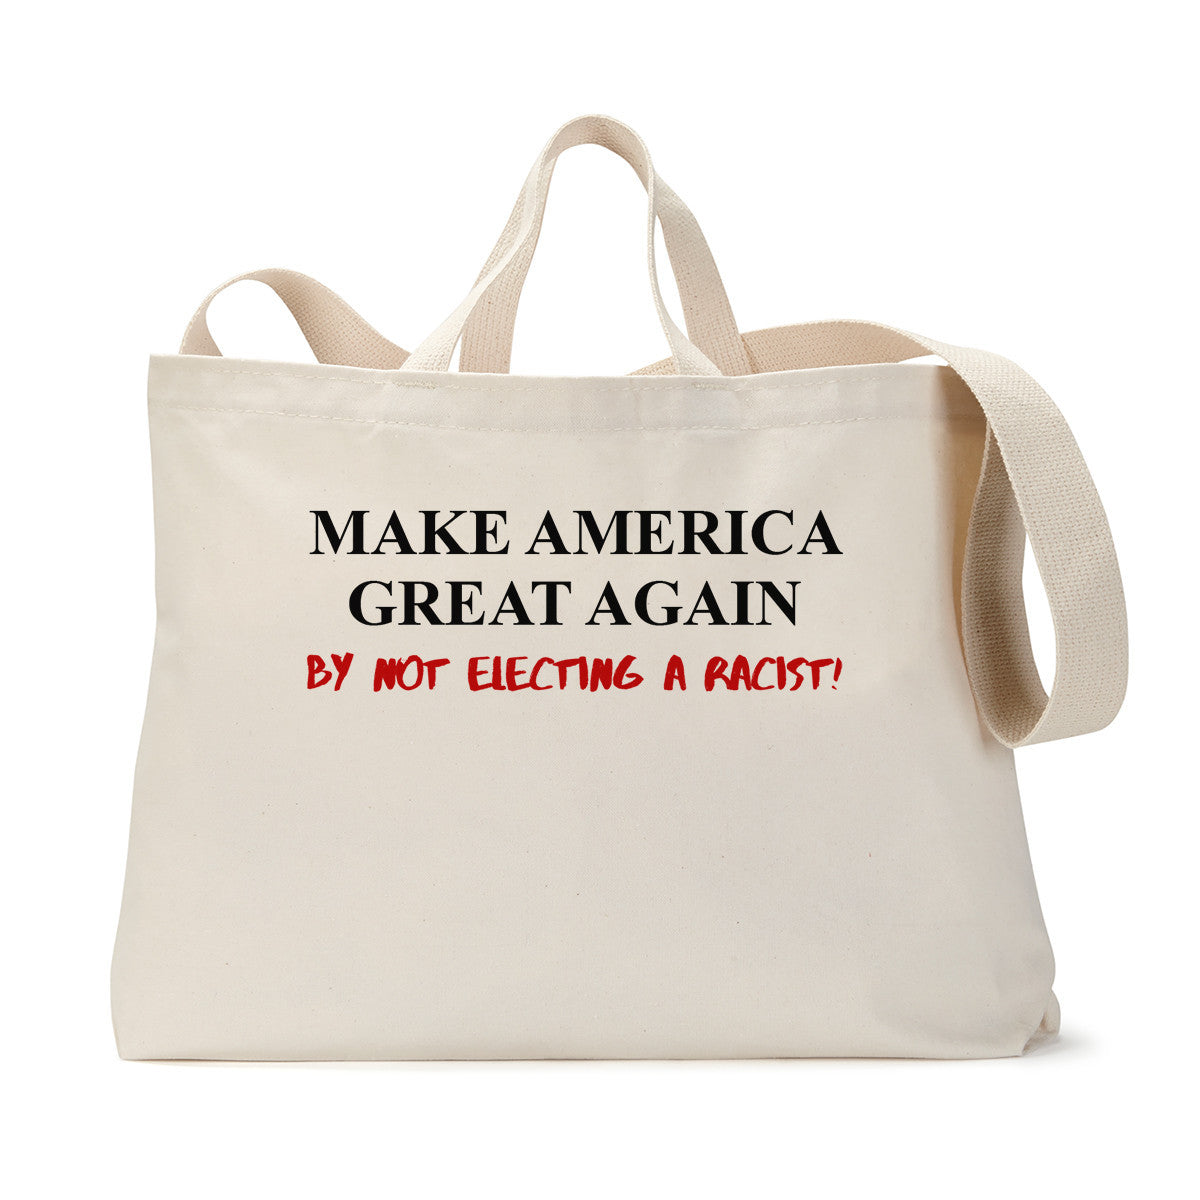 Make Great No Racist Tote Bag